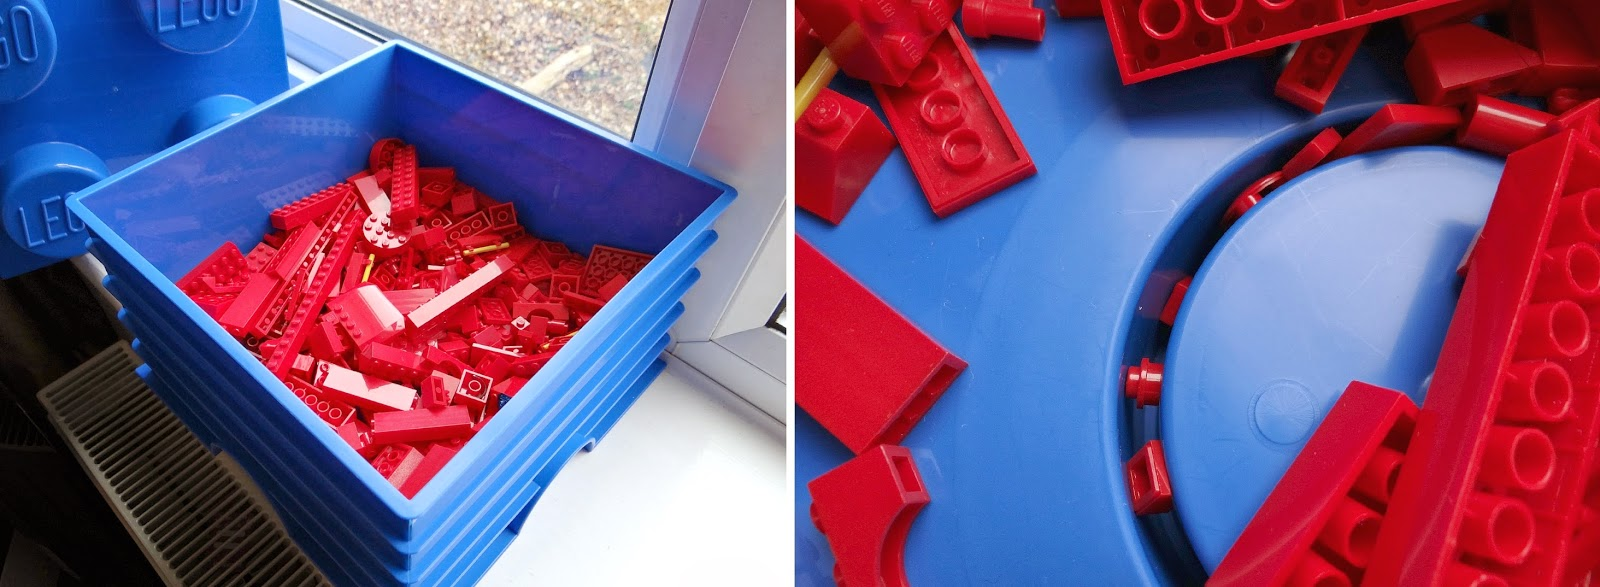 LEGO Storage Bricks, Limited Edition LEGO Storage, Giant LEGO Bricks